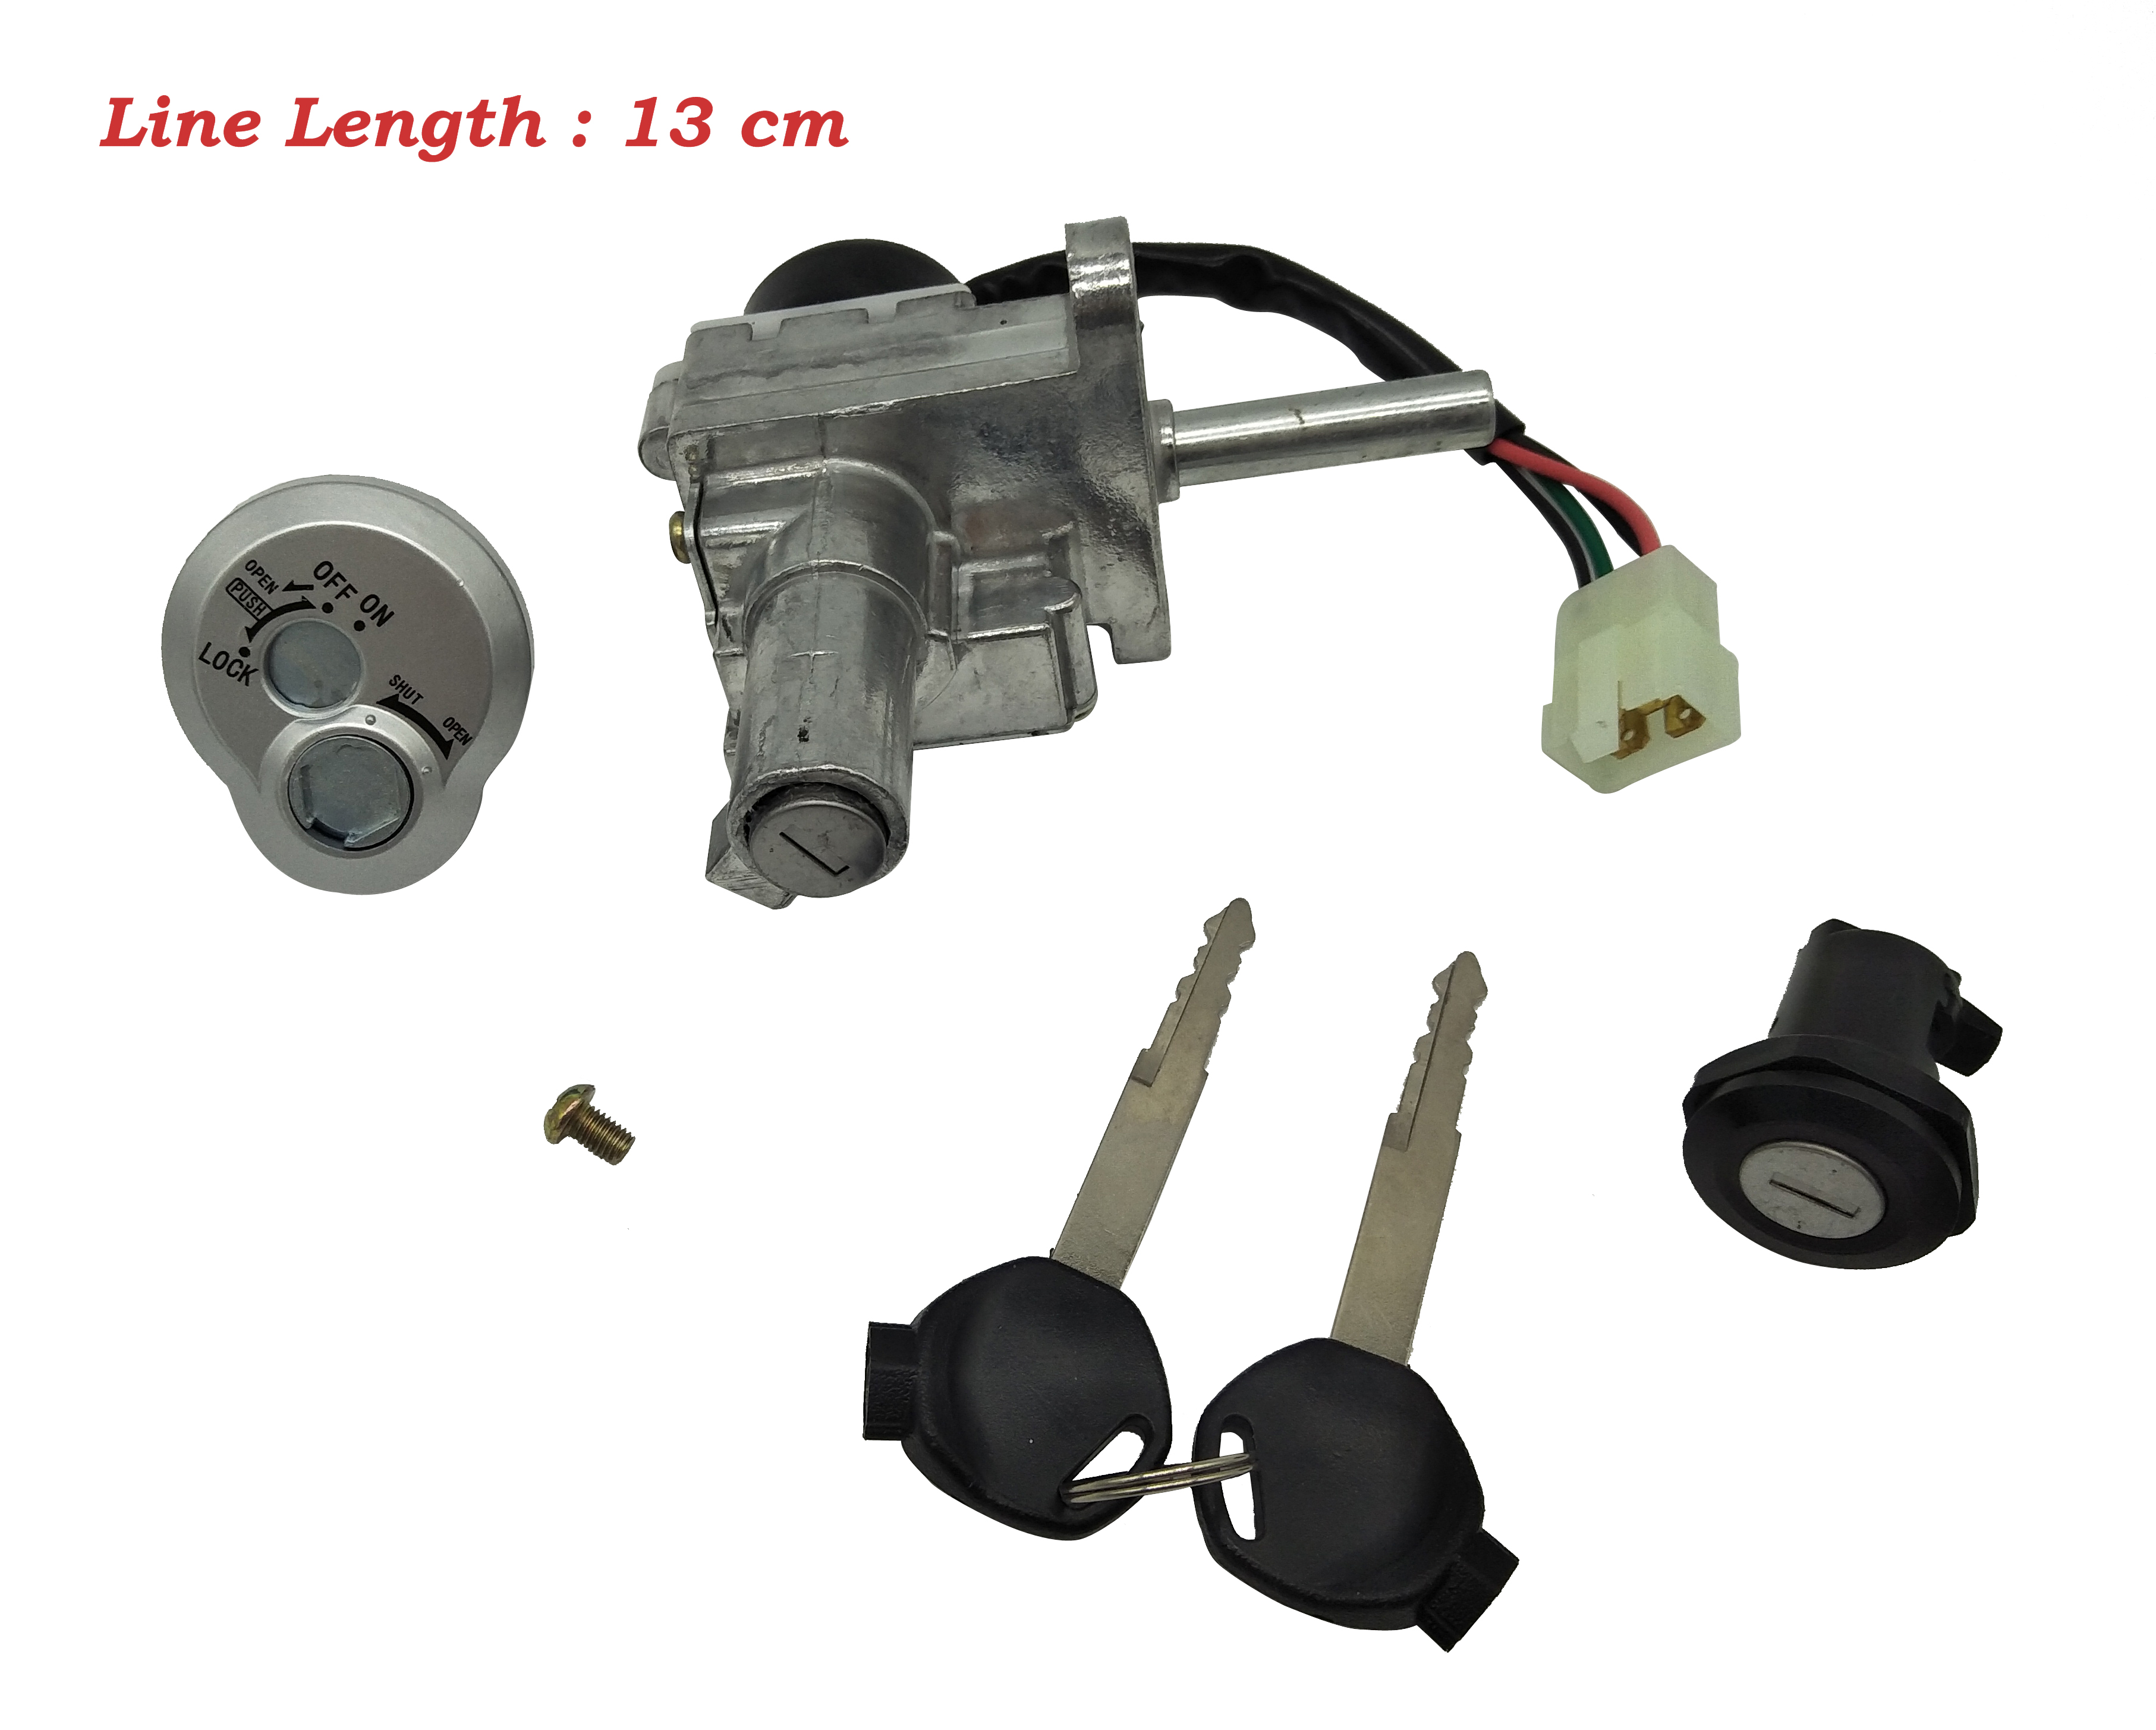 Z024 Moped Scooter Motorcycle Lock For 125 4 Generation Electric Door Lock Sets For Yamaha ZY125T-4 4 Generation Antitheft Lock